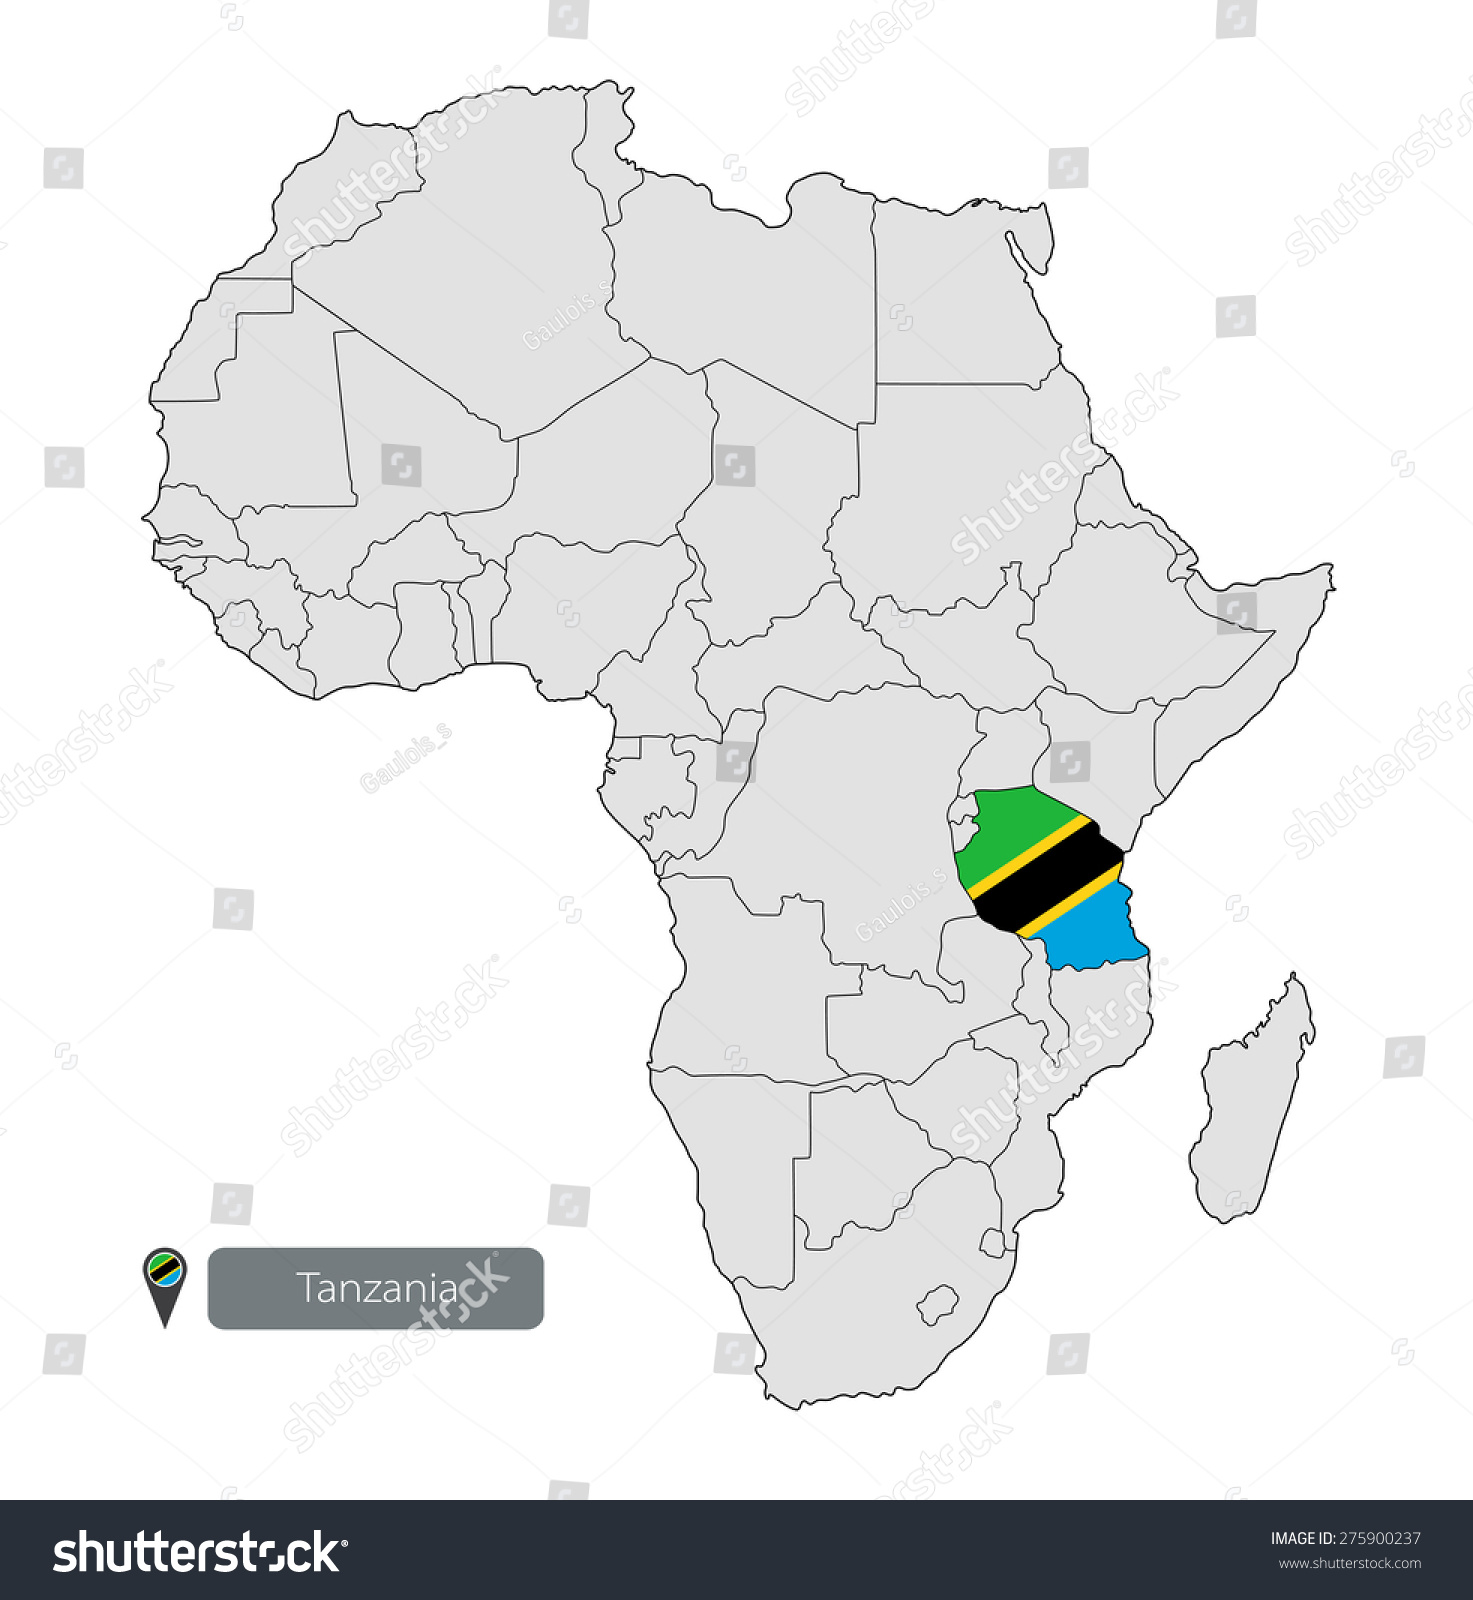 Map Tanzania Official Flag Location On Stock Vector (Royalty Free